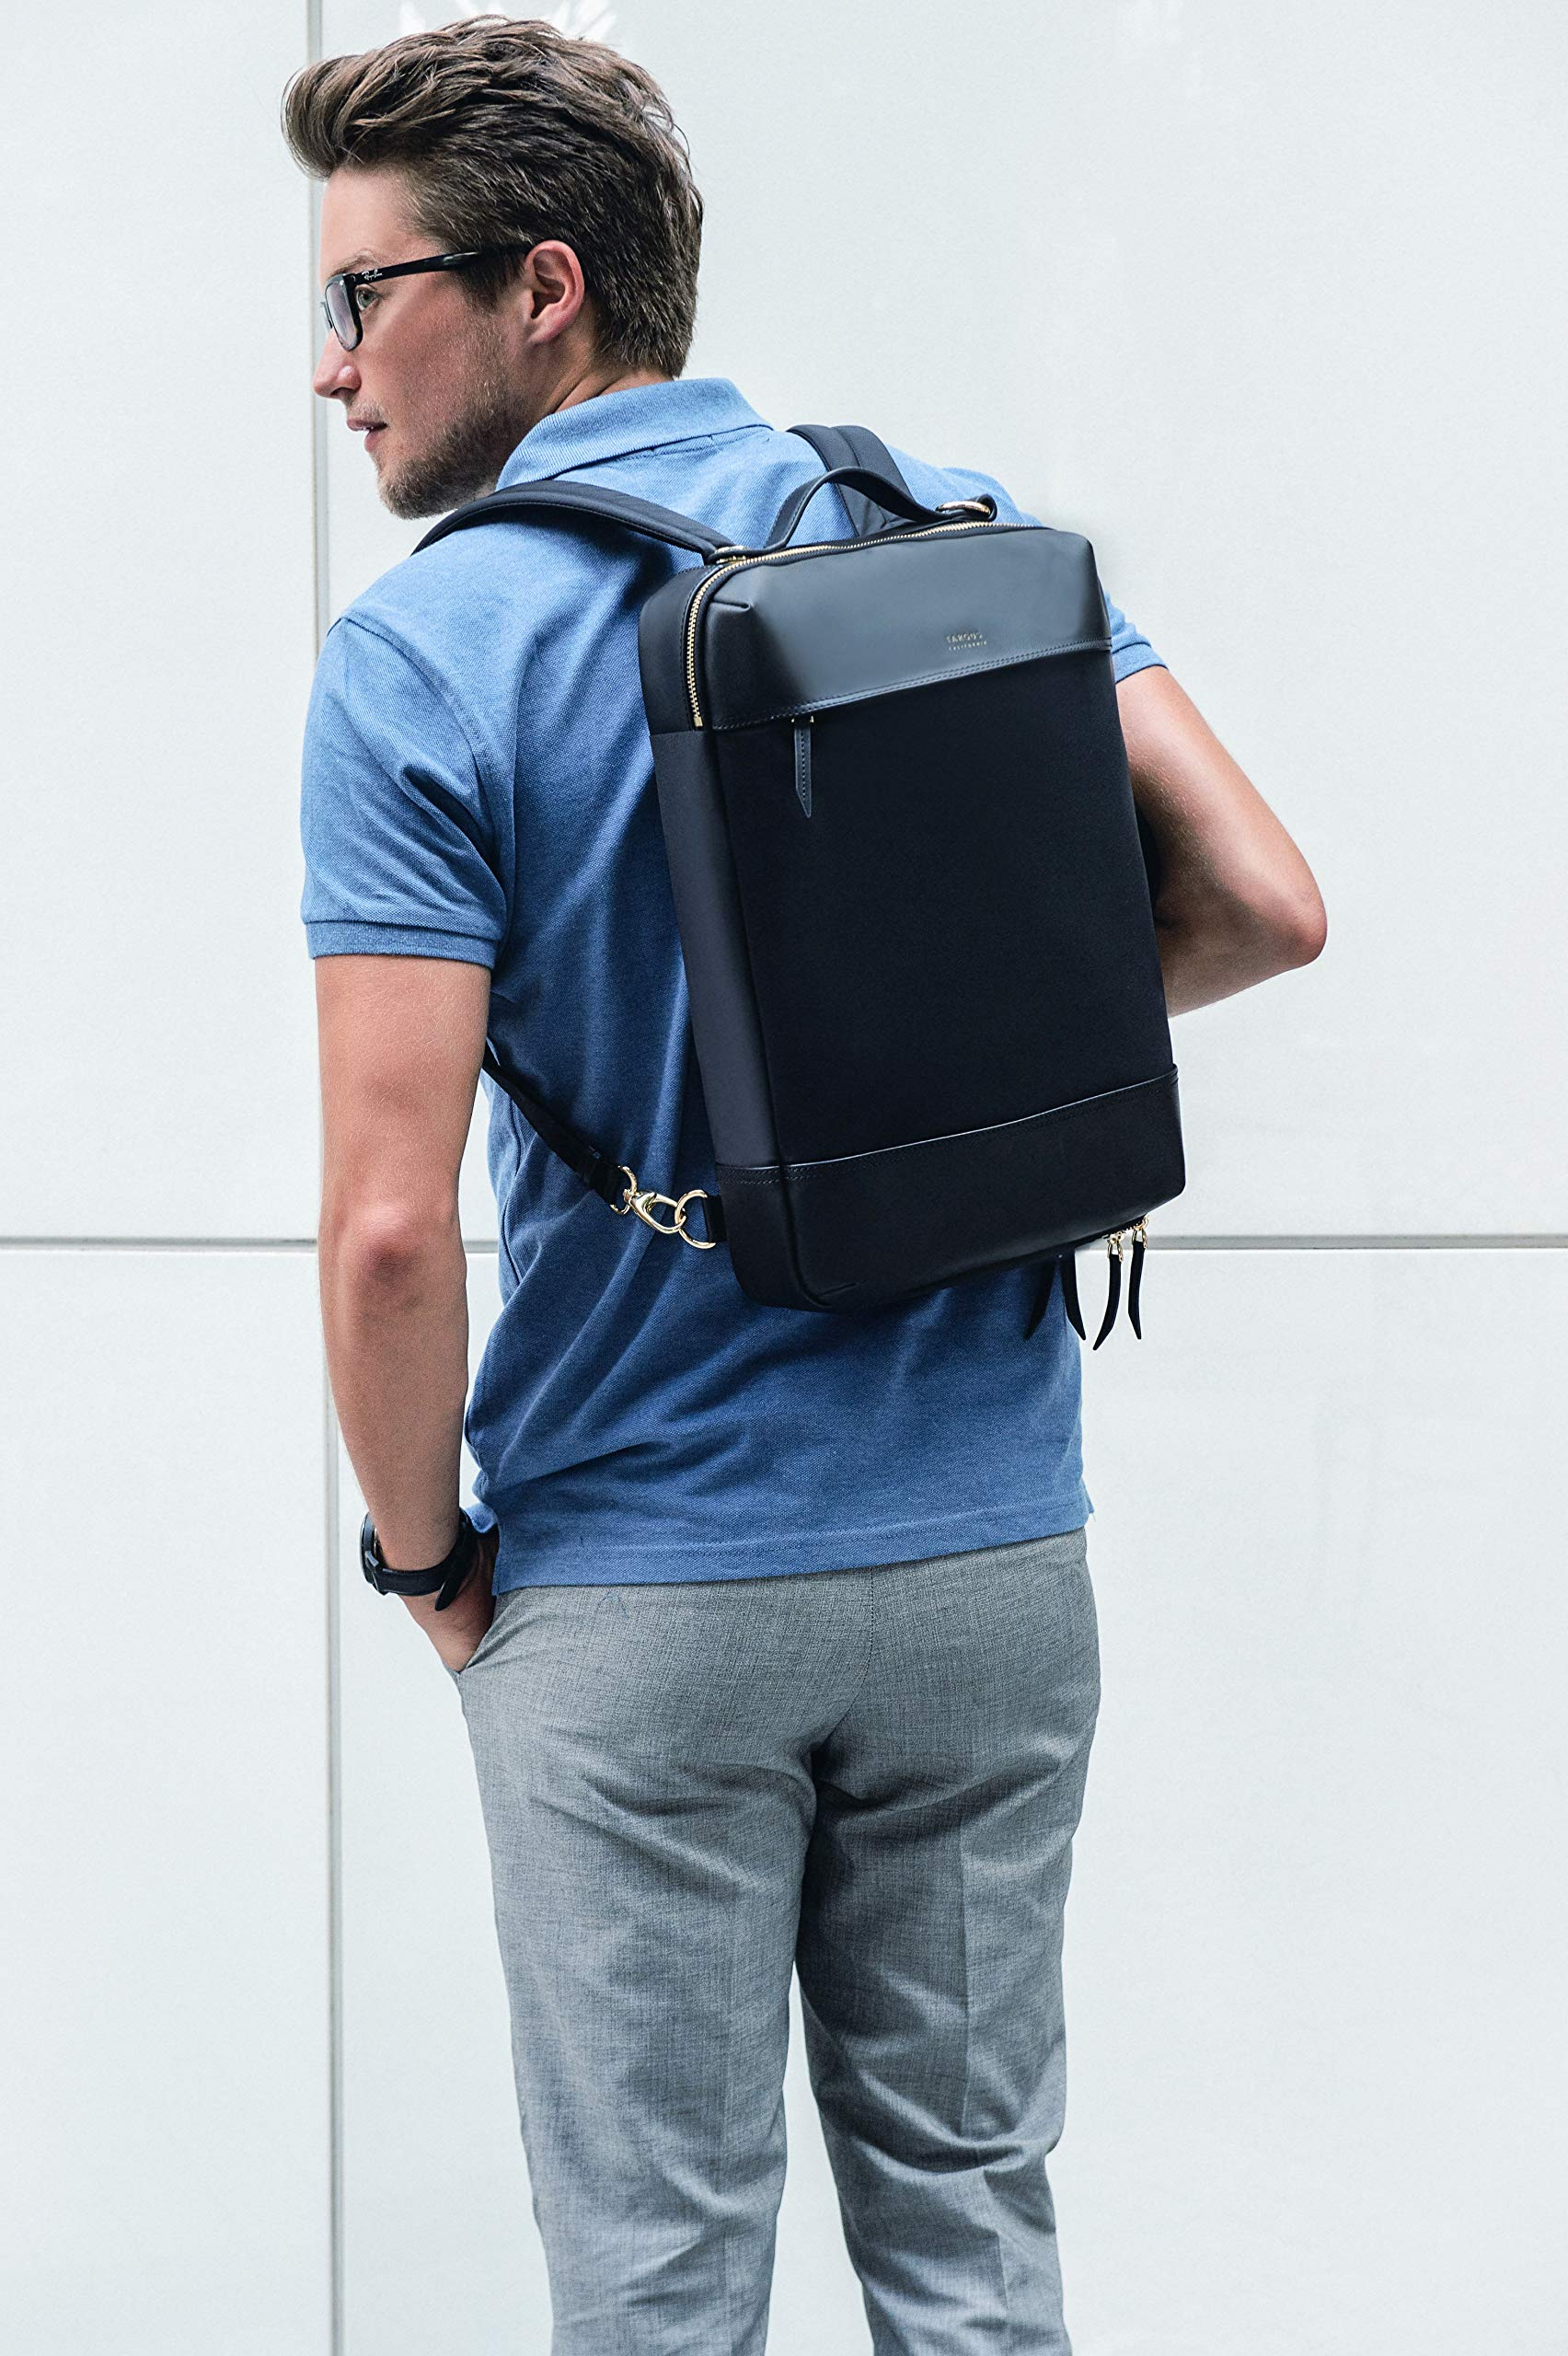 Man carrying laptop backpack